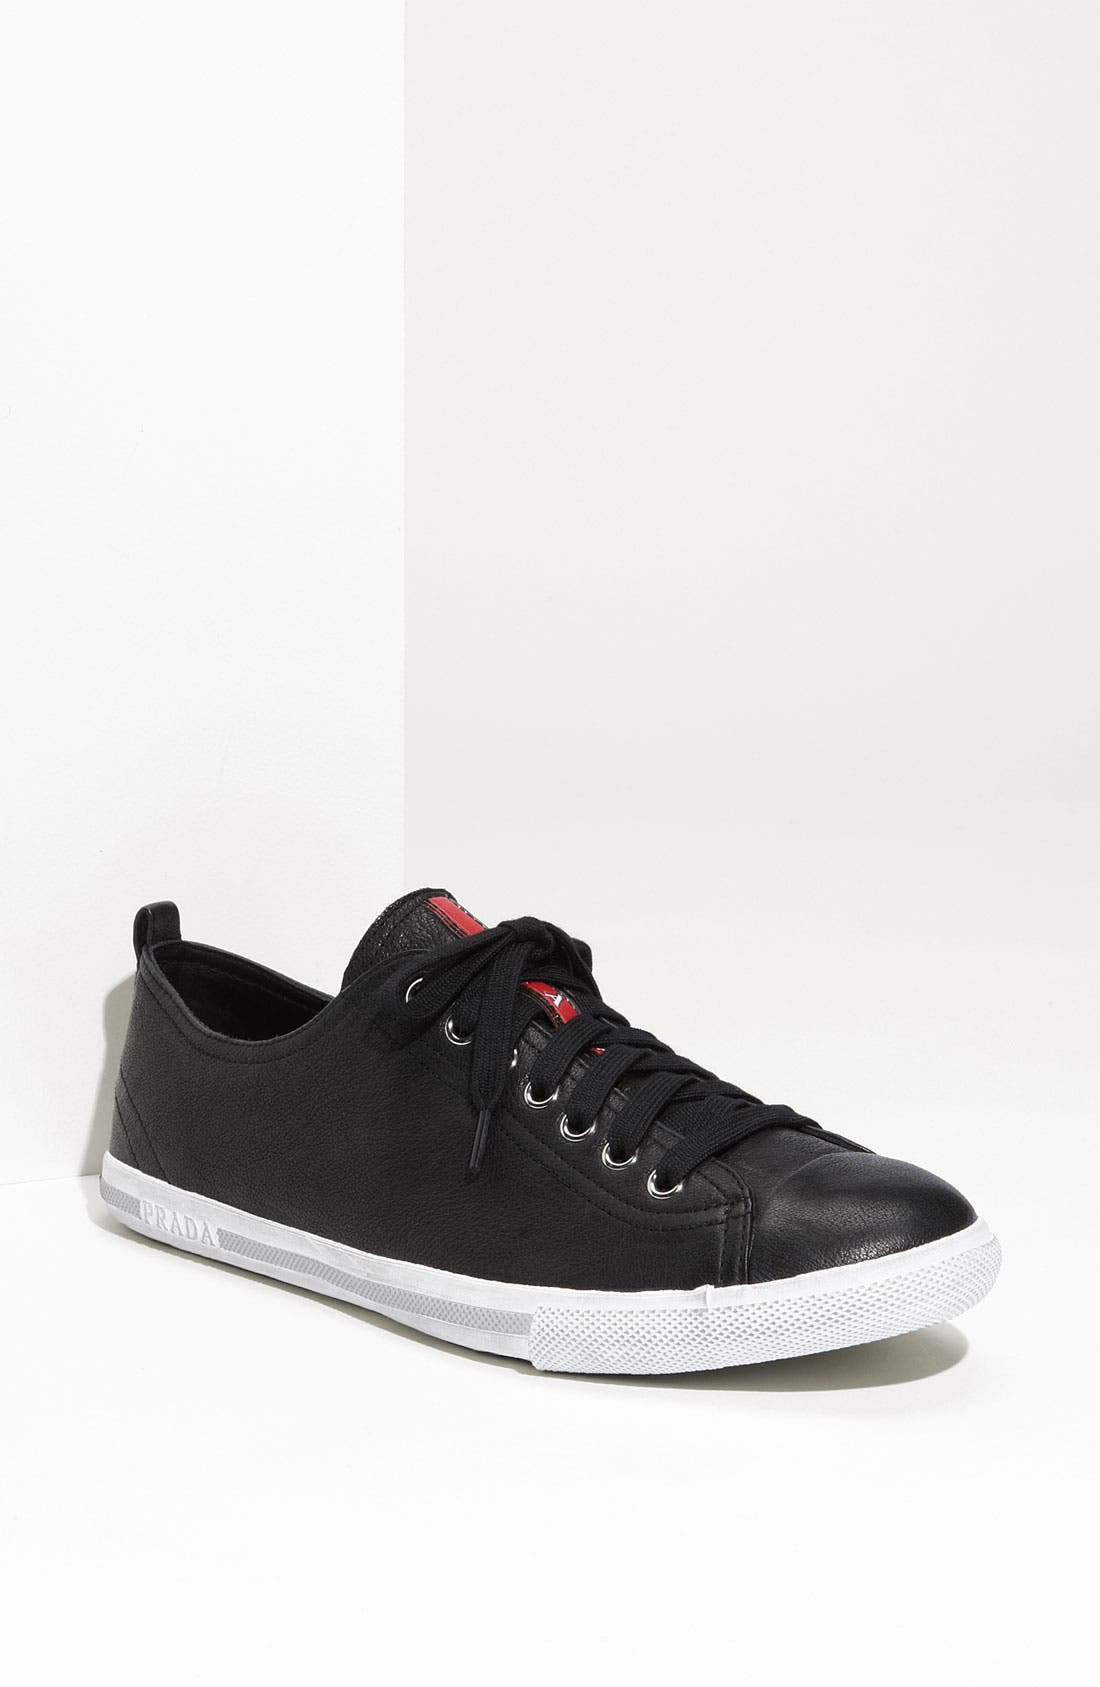 Alternate Image 1 Selected - Prada Low Profile Sneaker (Men)